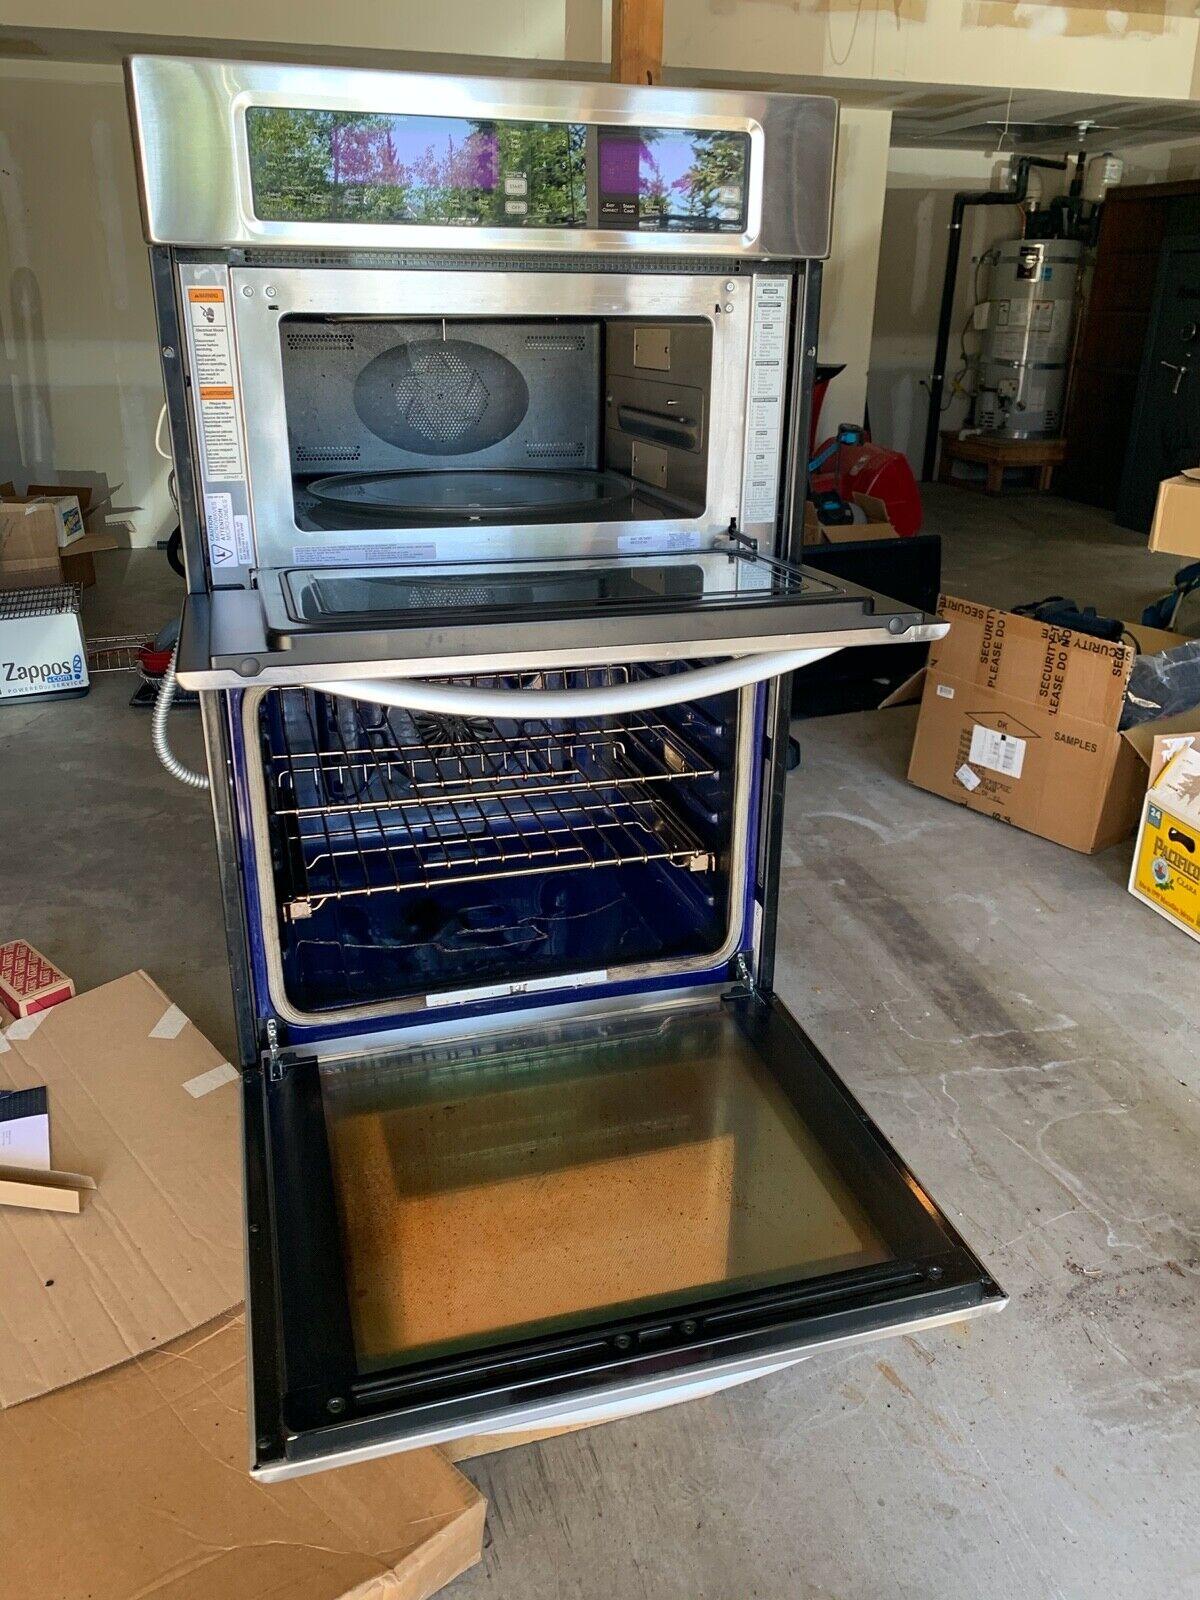 Kitchenaid Architect Series Ii 30 5cf Double Wall Oven Kebk206bss For Sale Online Ebay